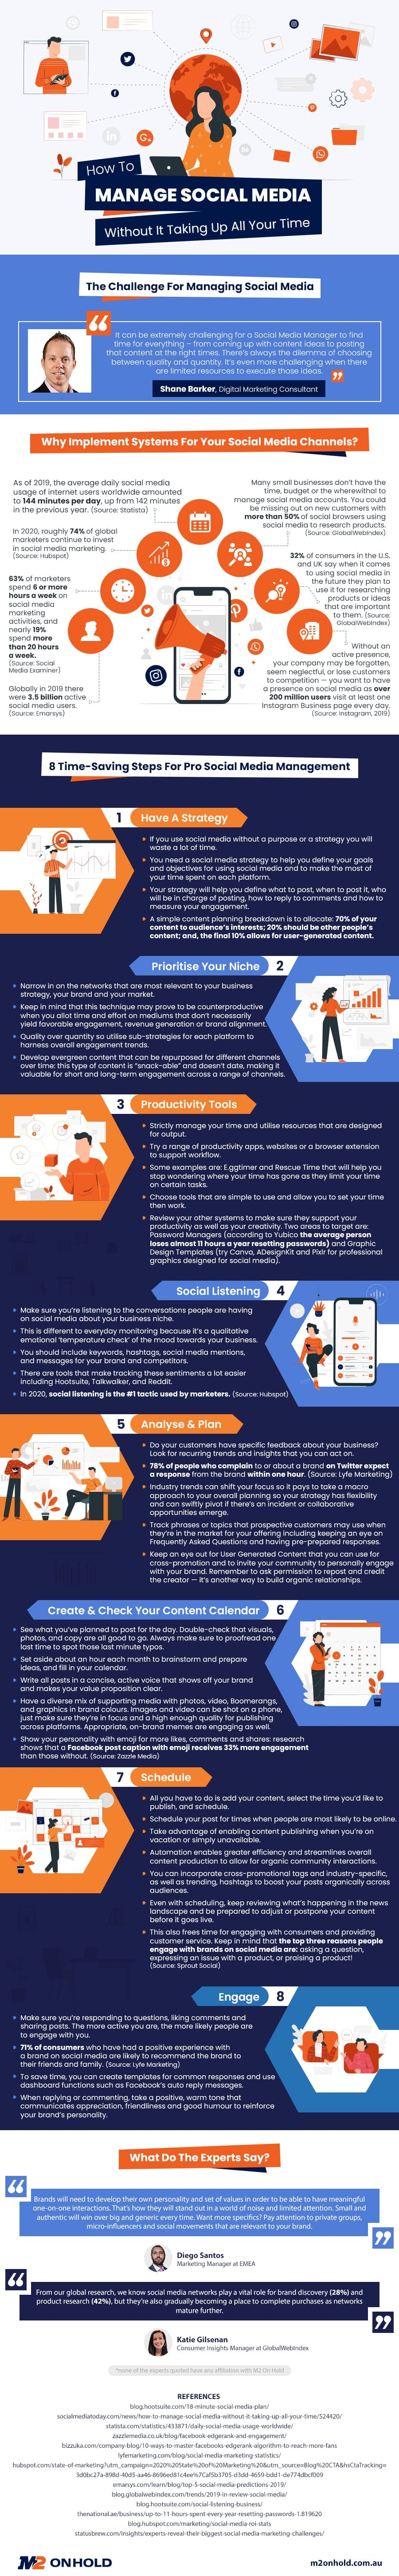 How To Manage Social Media (Infographic)